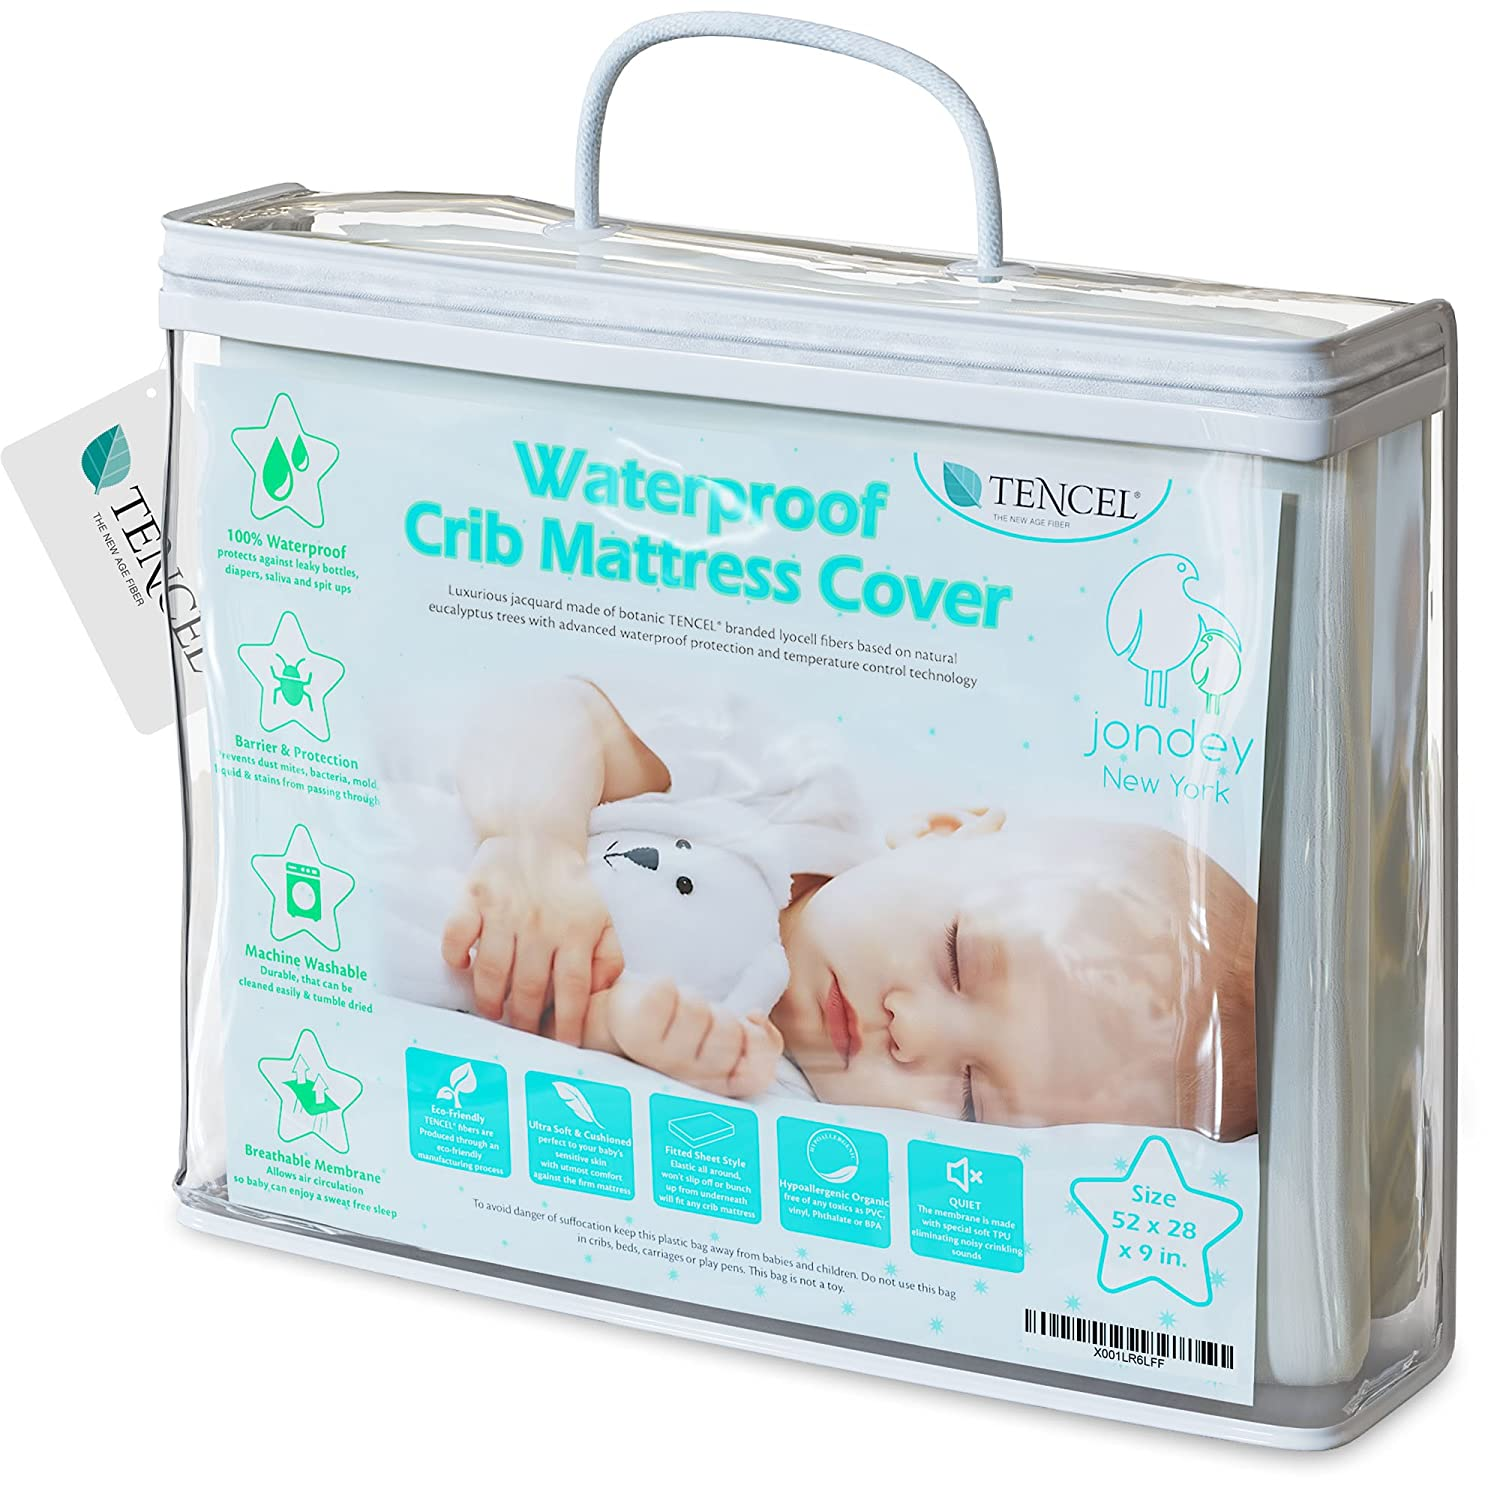 Organic TENCEL Crib Mattress Protector Pad Waterproof Breathable Hypoallergenic Jacquard Fitted Soft Padded 52x28x9 Inch for Baby Toddler Infant Bed Flannel White Cover Topper S. T. For Jondey INC